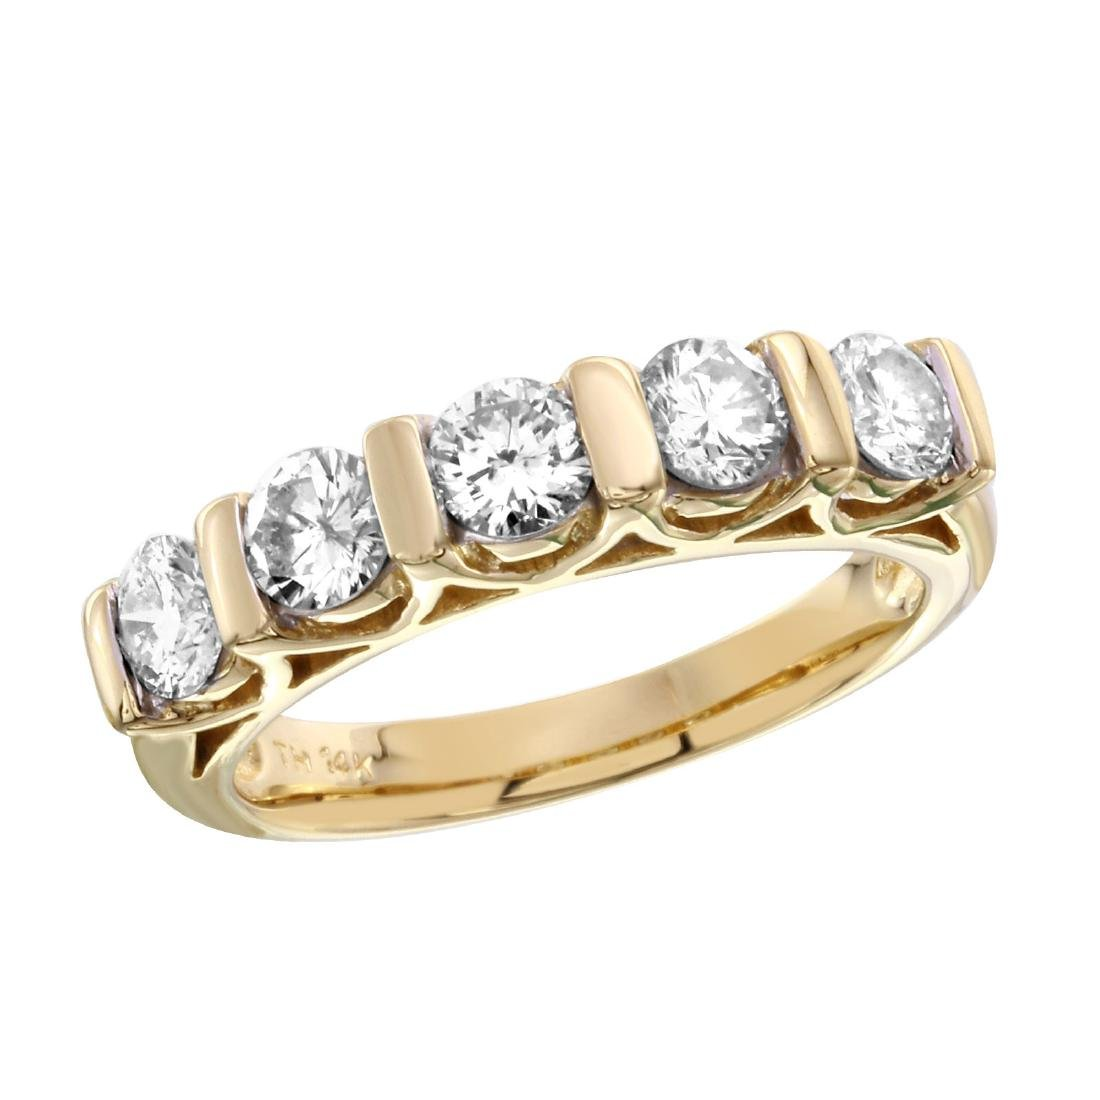 14KT Yellow Gold Diamond Ring - 3